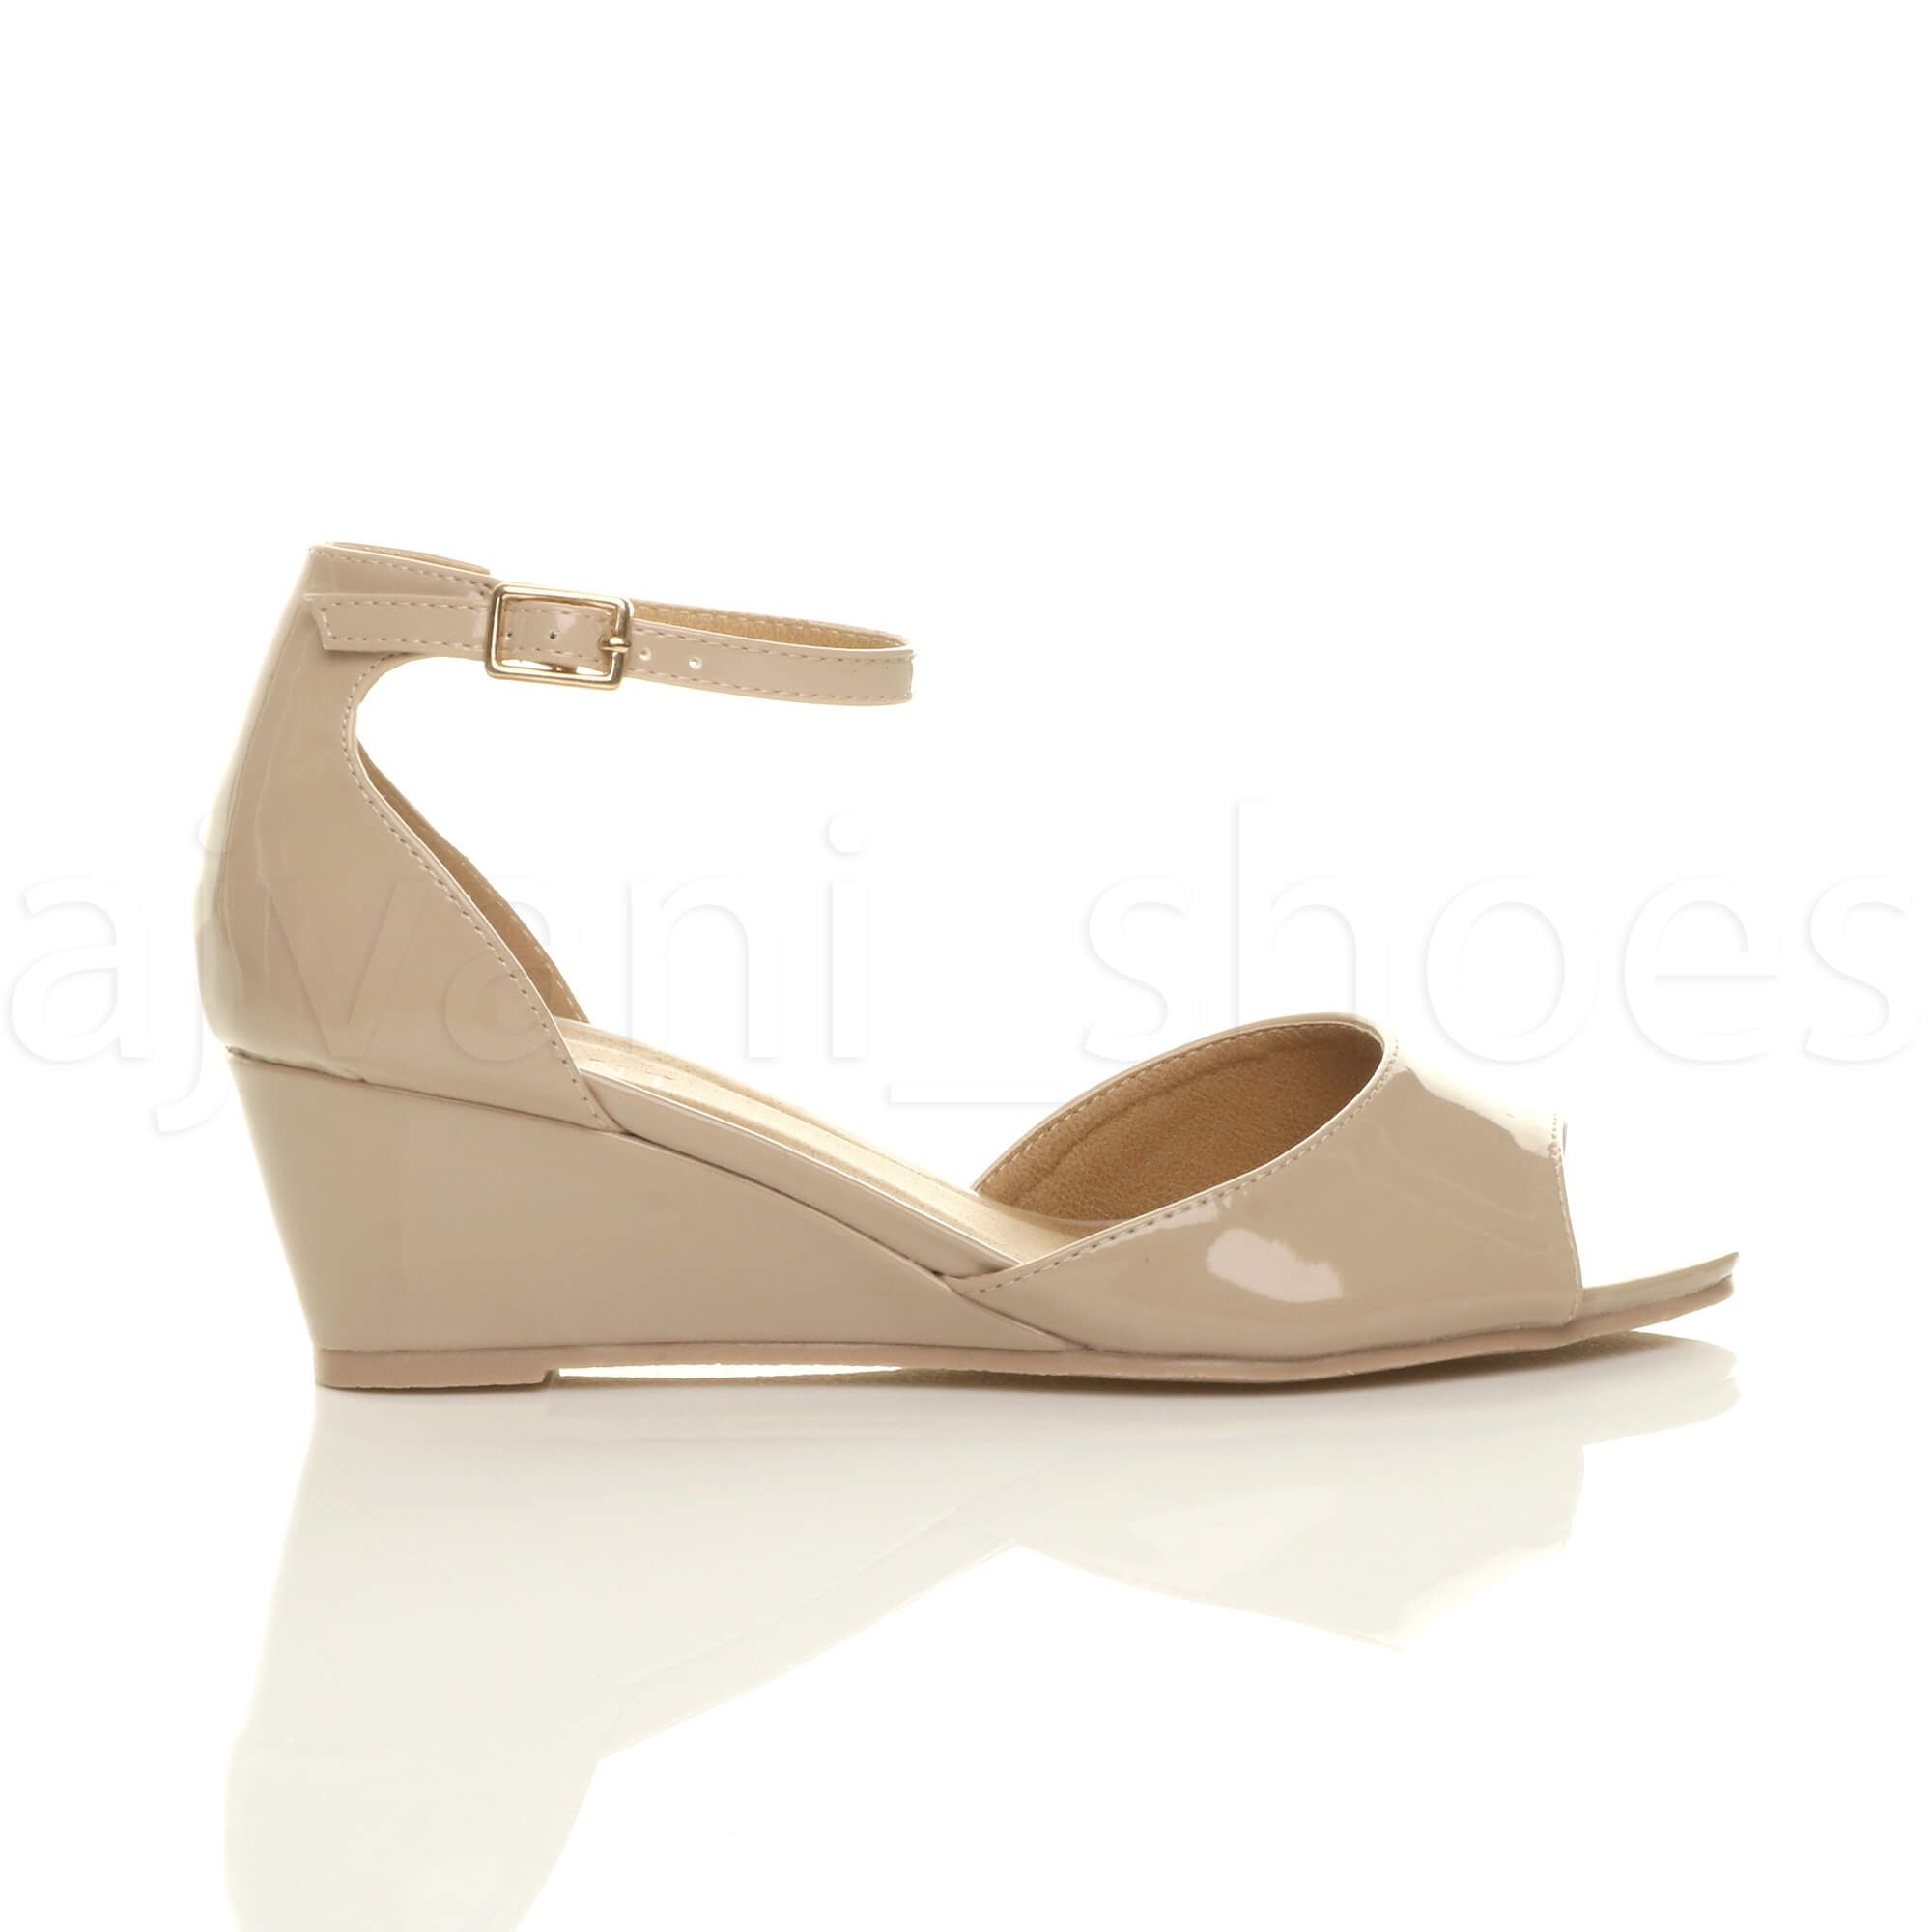 WOMENS-LADIES-LOW-MID-WEDGE-HEEL-ANKLE-STRAP-SMART-CASUAL-EVENING-SANDALS-SIZE thumbnail 99